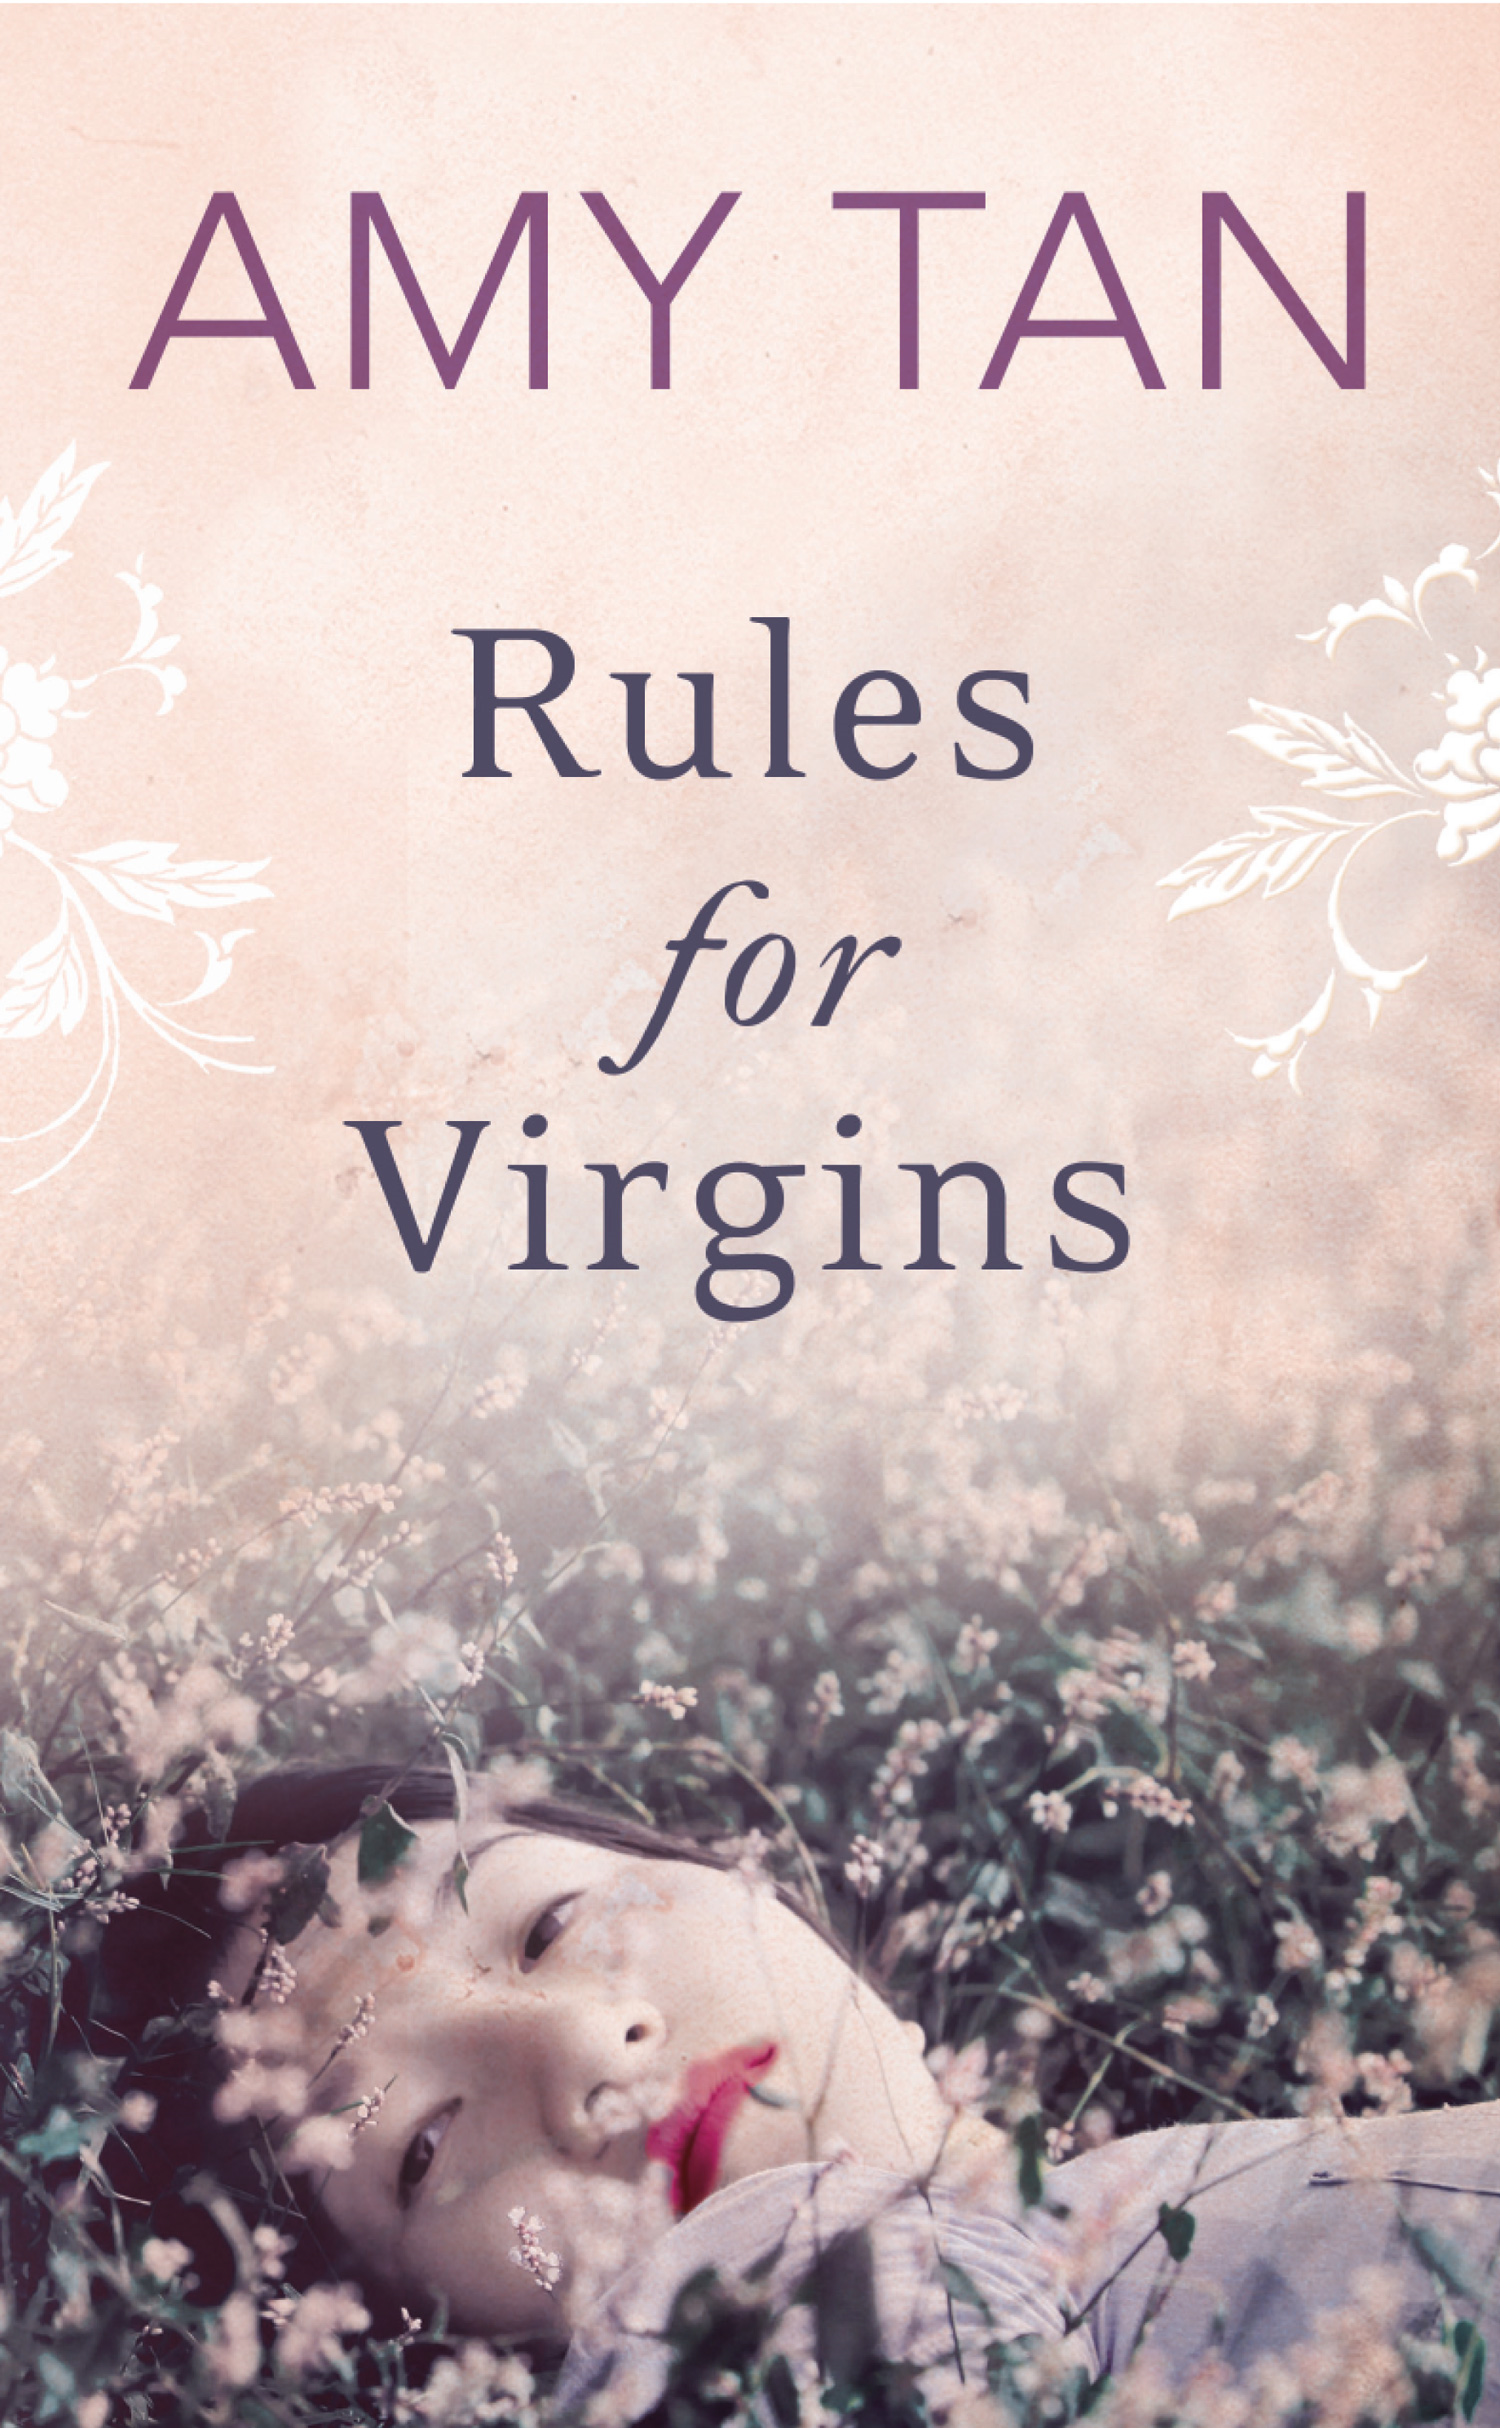 Rules for Virgins